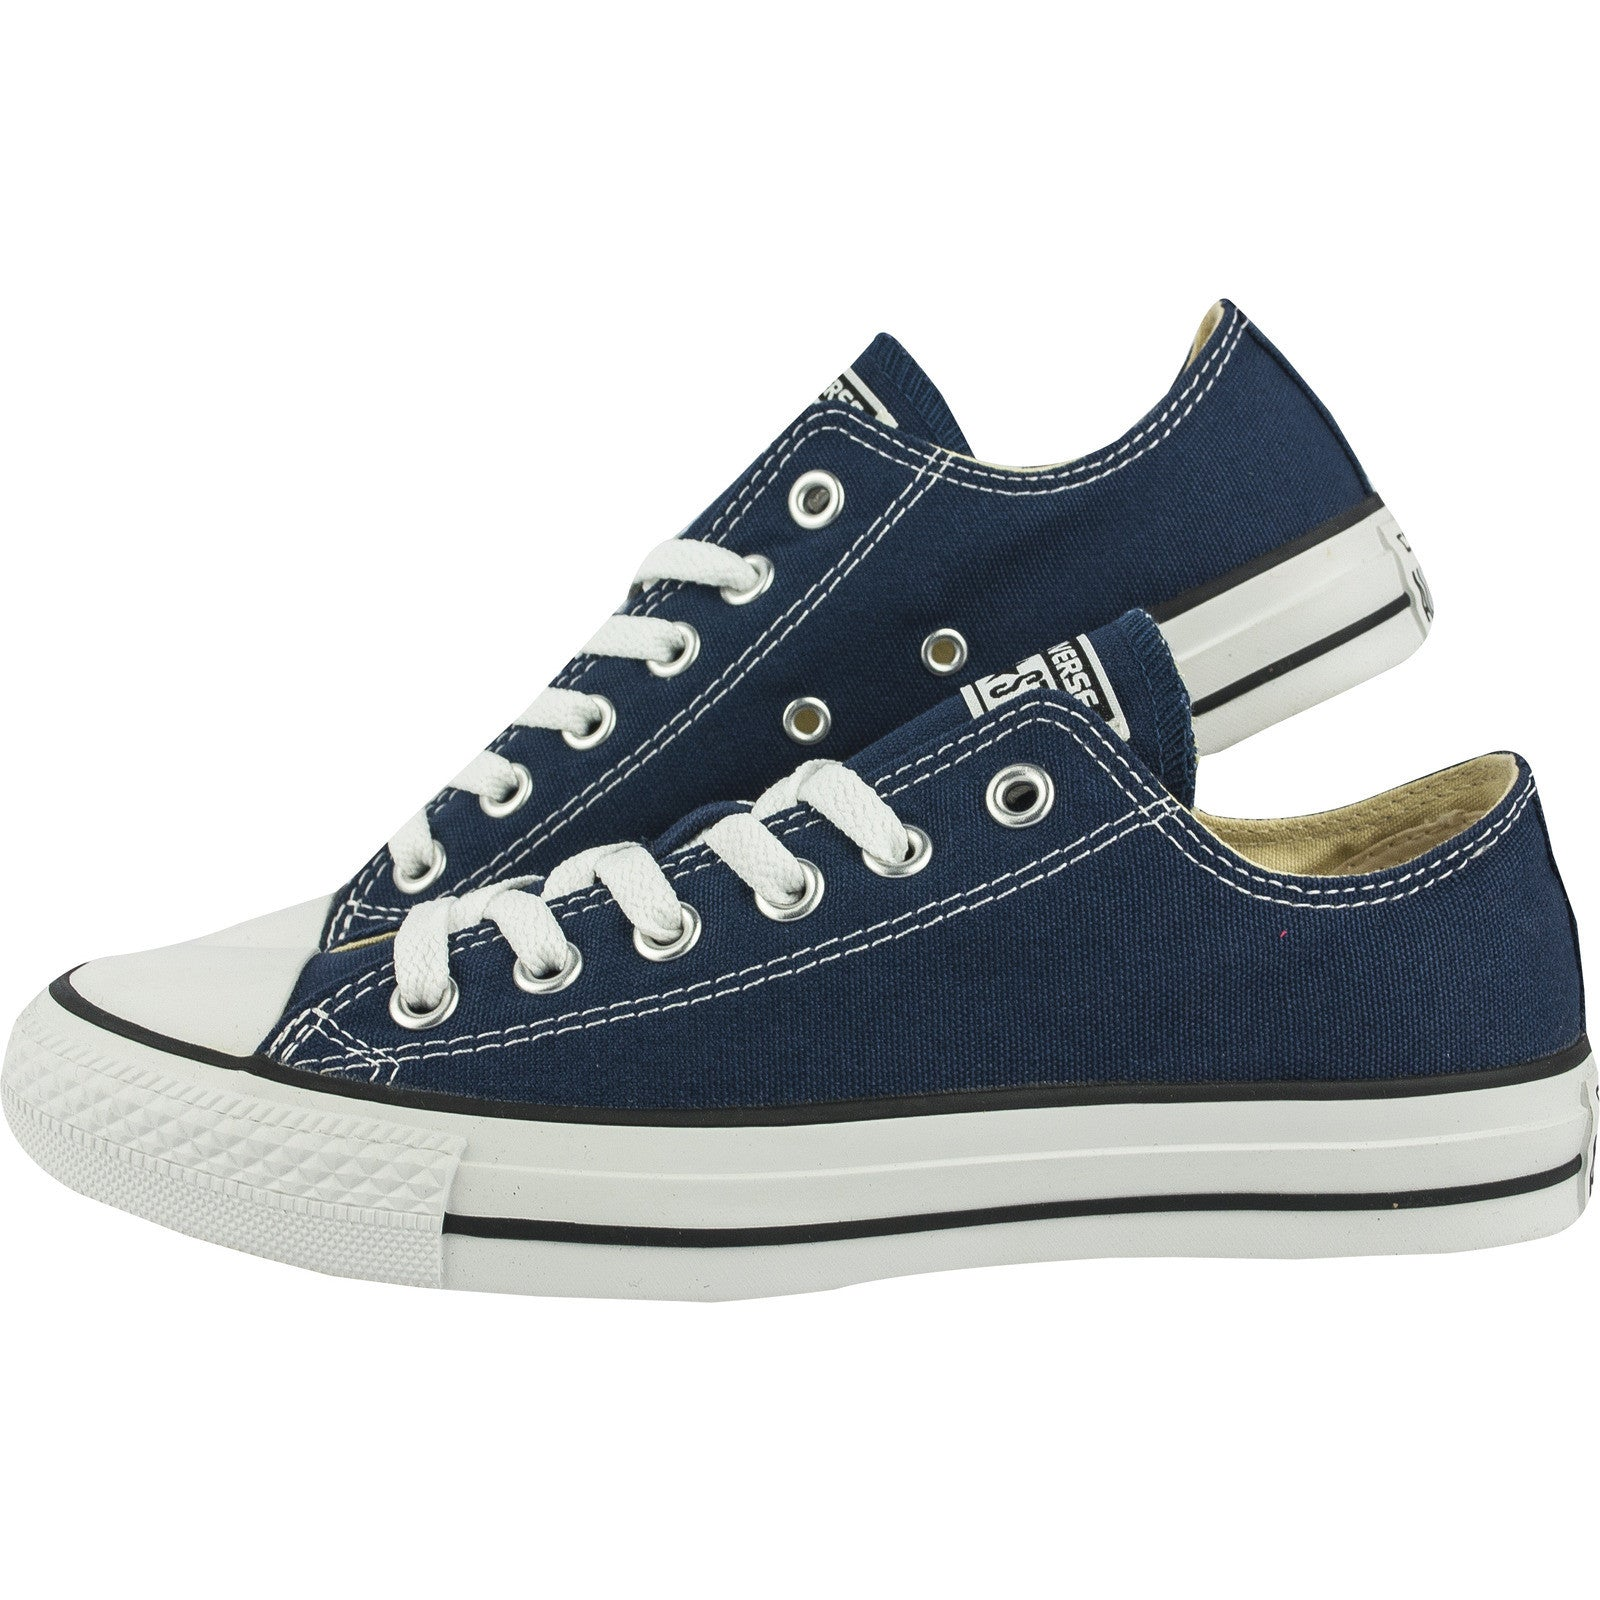 b264c4a75b86 Converse Classic Chuck Taylor All Star Navy Blue Low Tops M9697C Sneaker  Men Women ...